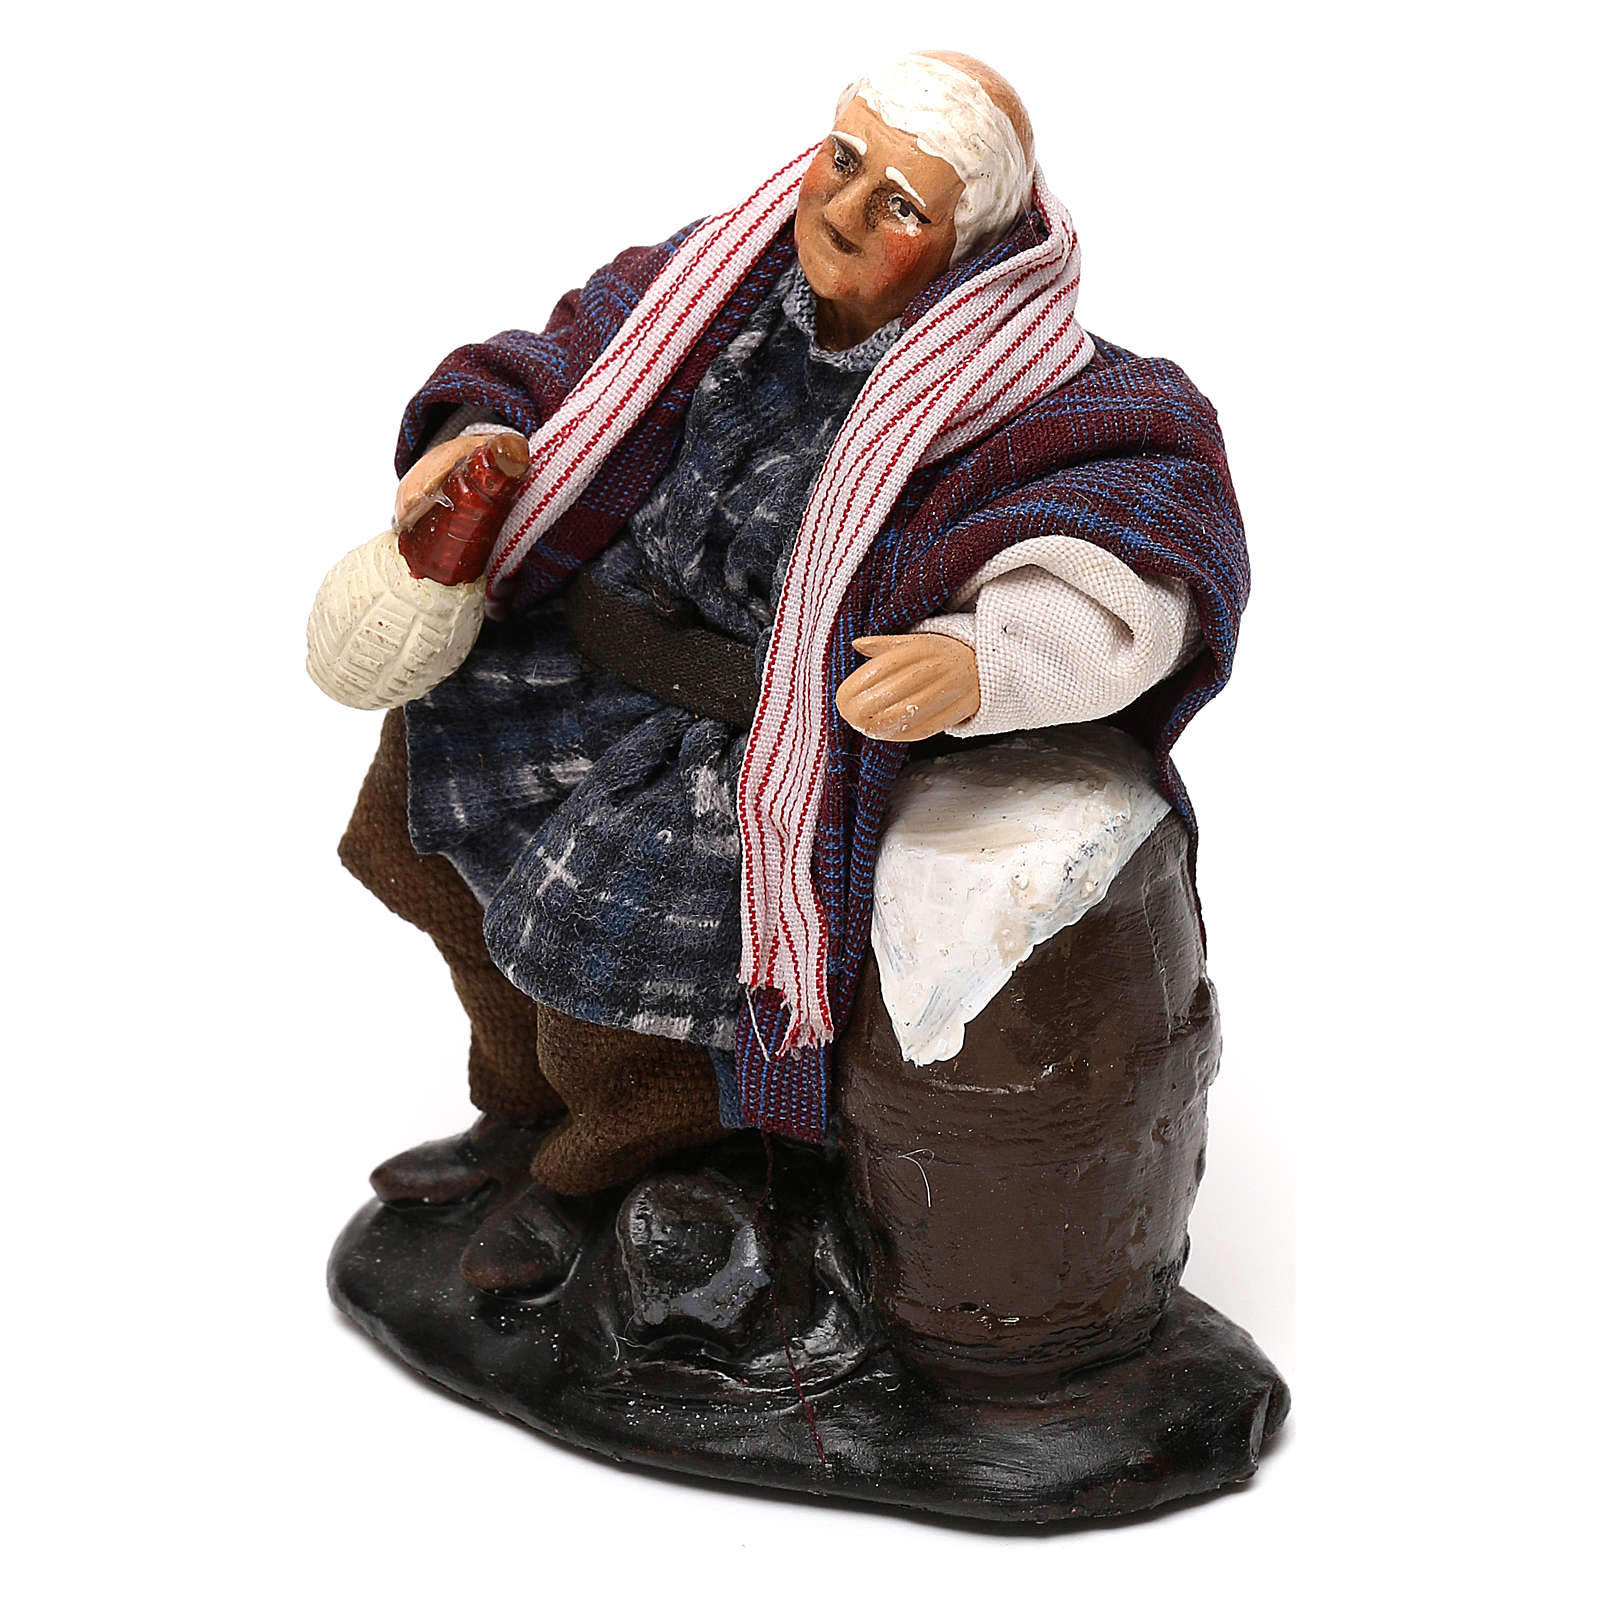 Neapolitan Nativity scene, drunkard with bottle and barrel 12 cm 4